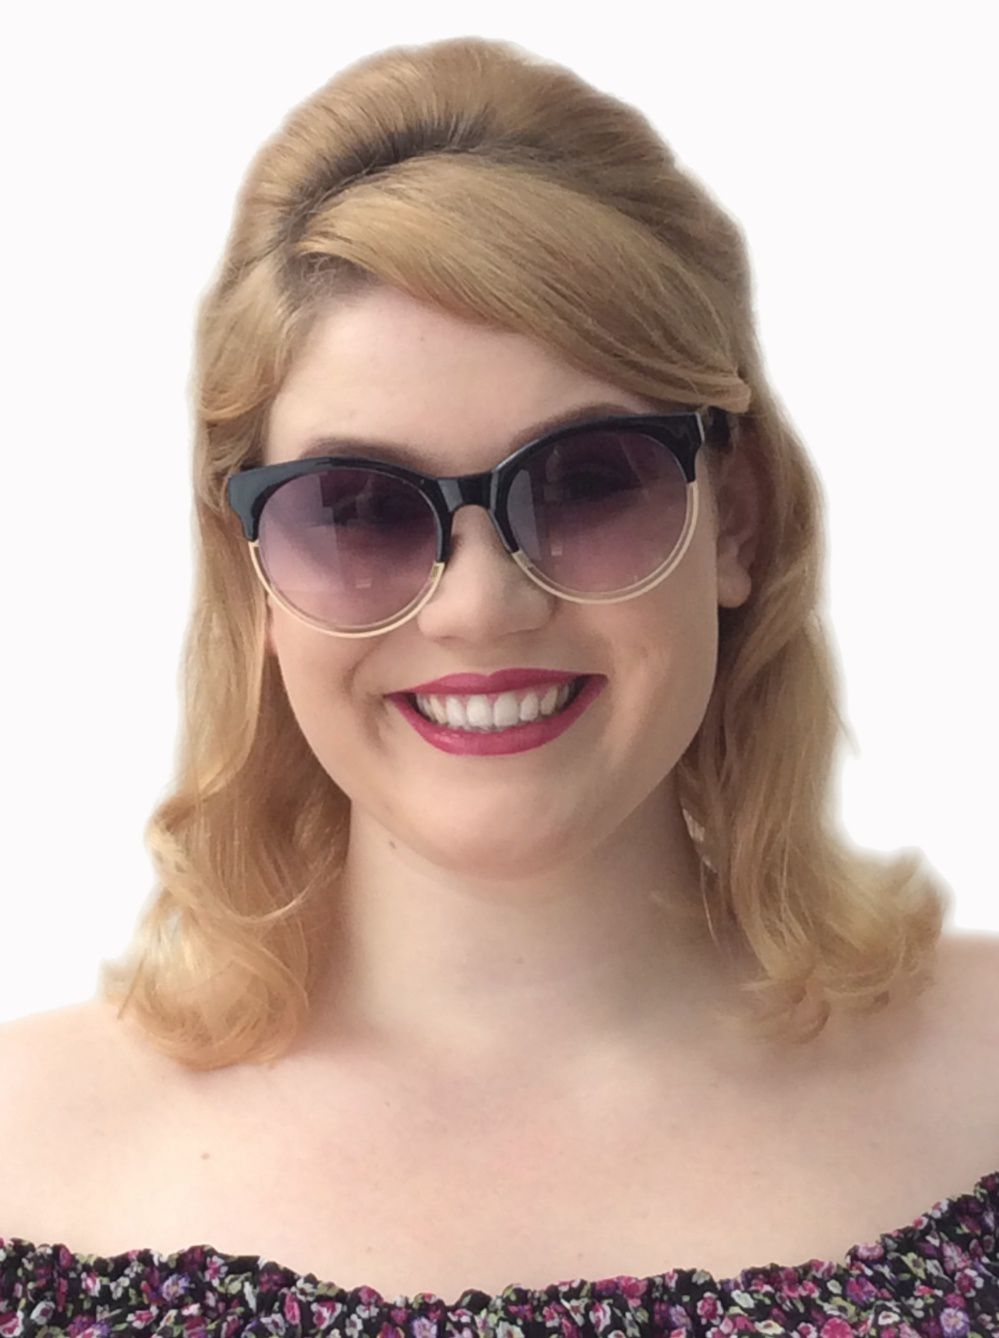 bnacd15139blk_lunettes-de-soleil-pin-up-retro-50-s-rockabilly-i-have-eyes-only-for-you